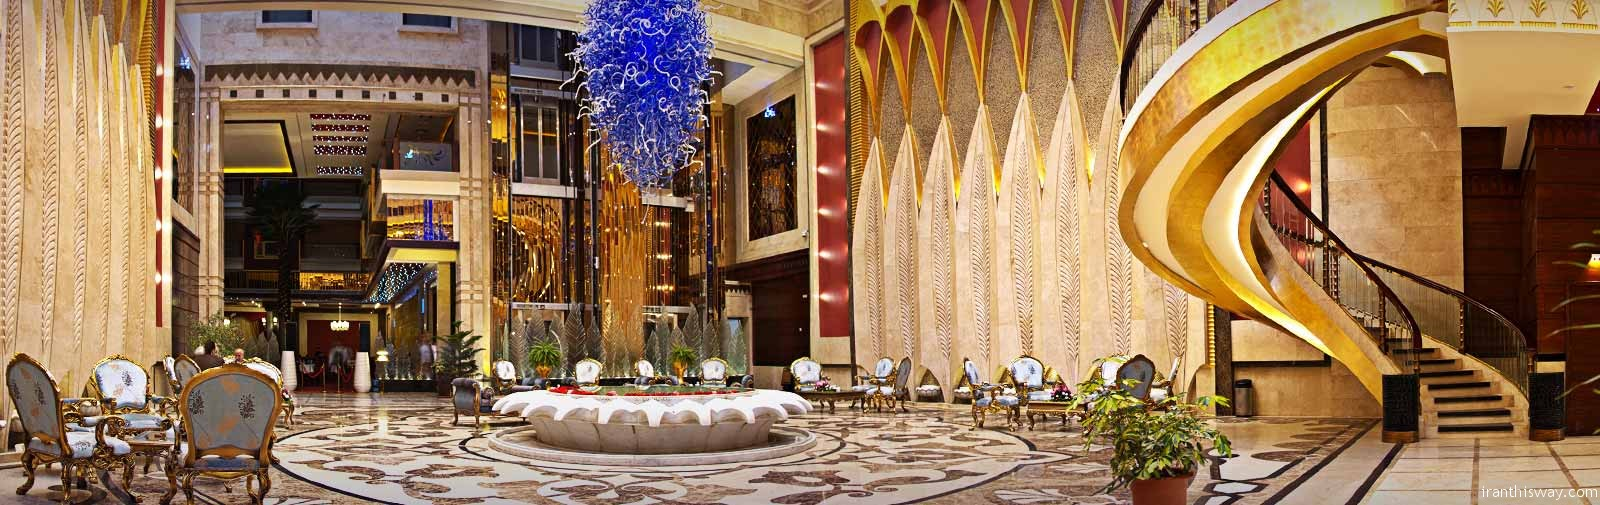 For this reason, Darvishi Royal Hotel attempted to make construction, equipment, facilities as well as how to render services compatible with the said goal so that it can add loyal guests to its spiritual capitals, in accordance with such principles as customer orientation.